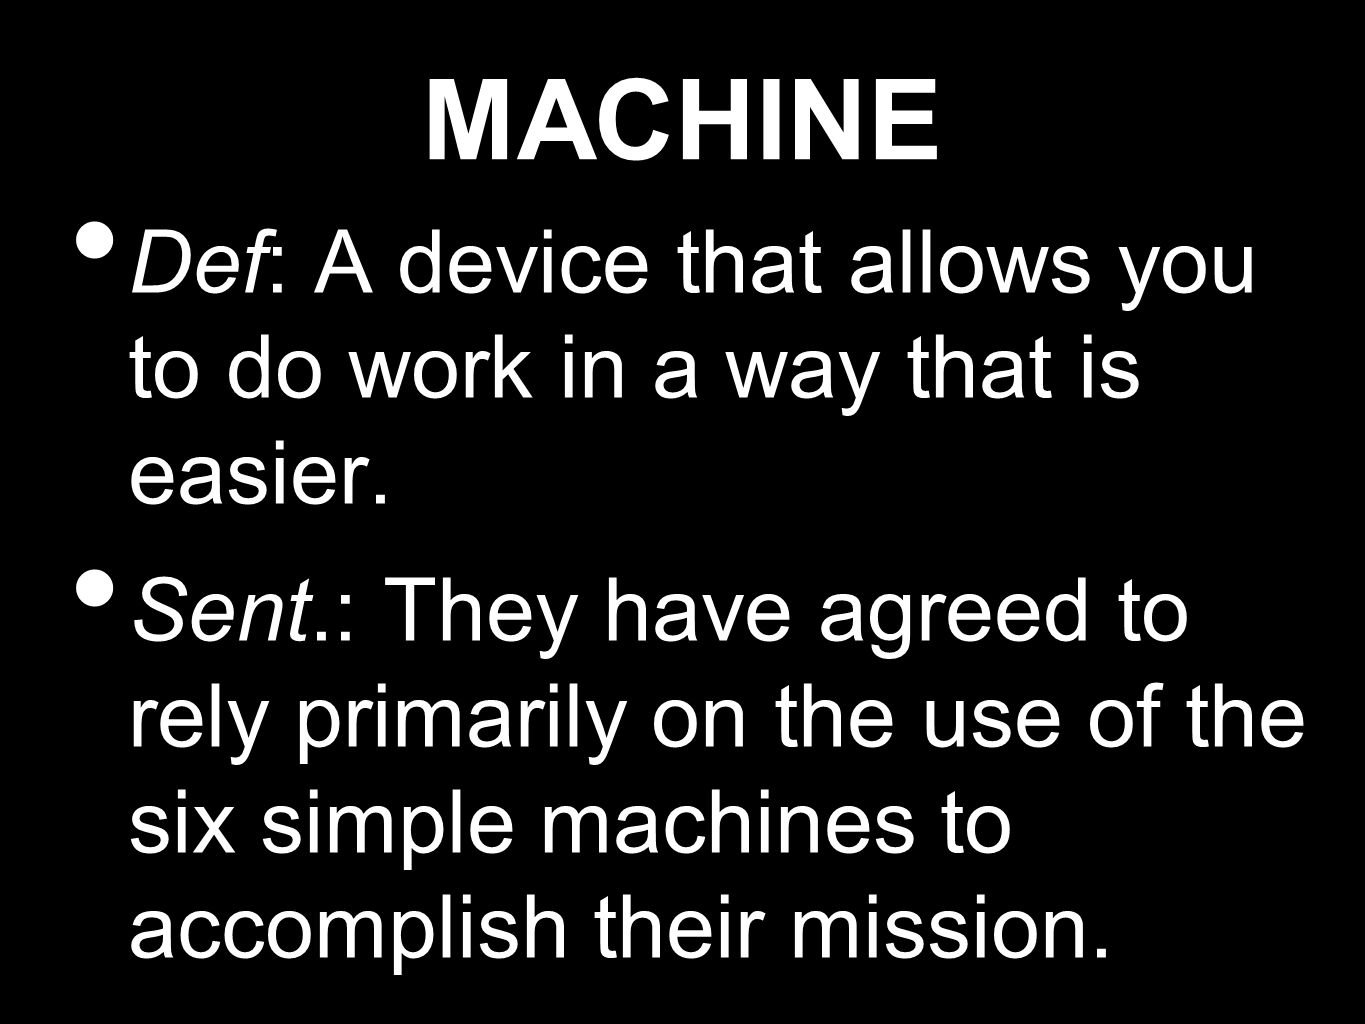 MACHINE Def: A device that allows you to do work in a way that is easier.